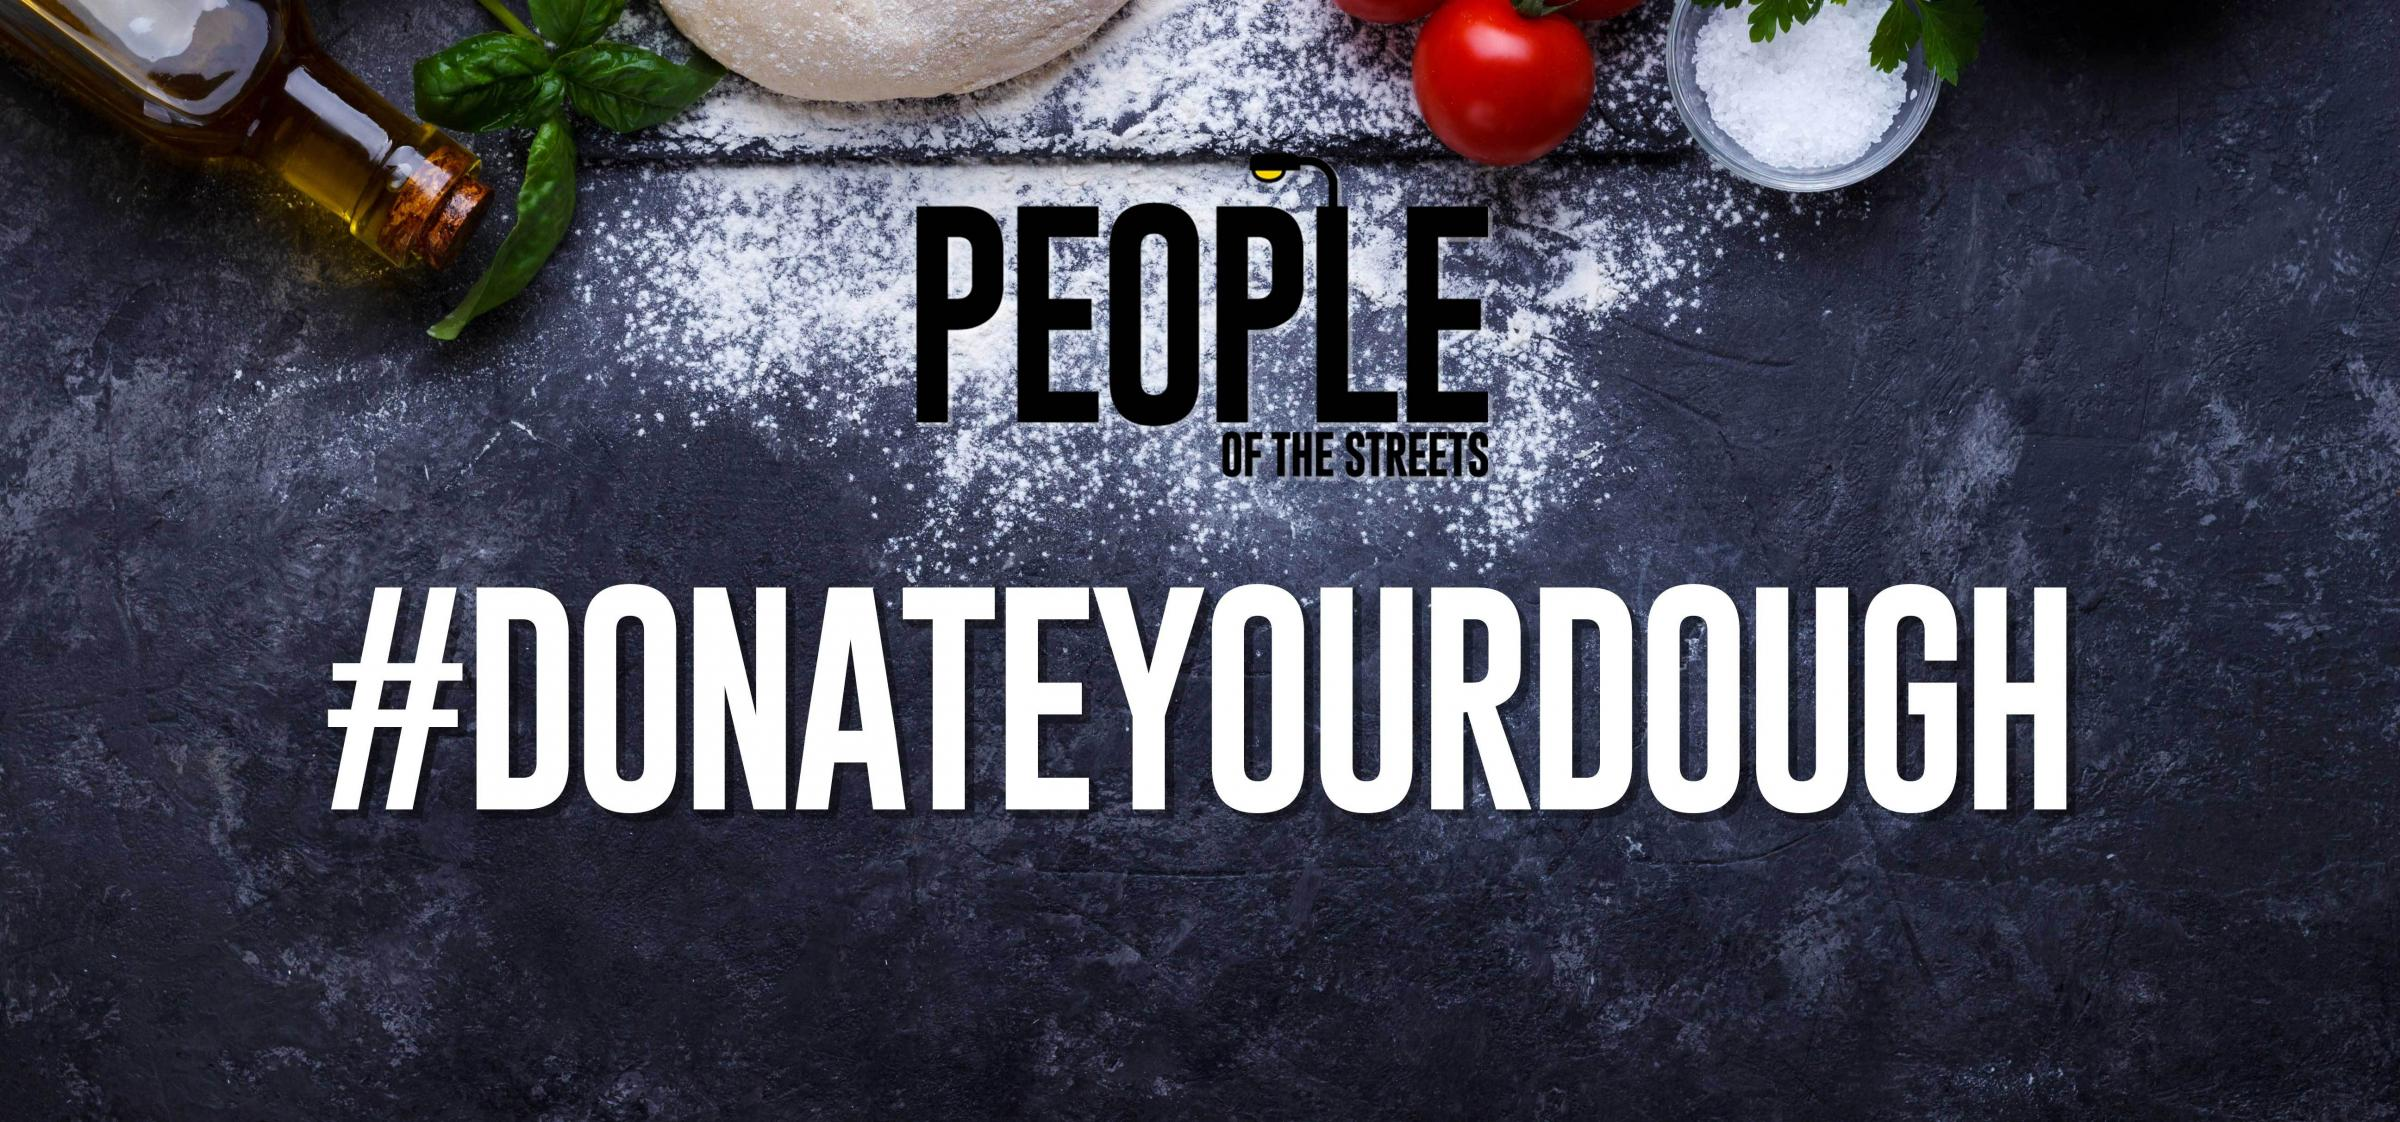 Donate your dough People of the Streets CIC campaign